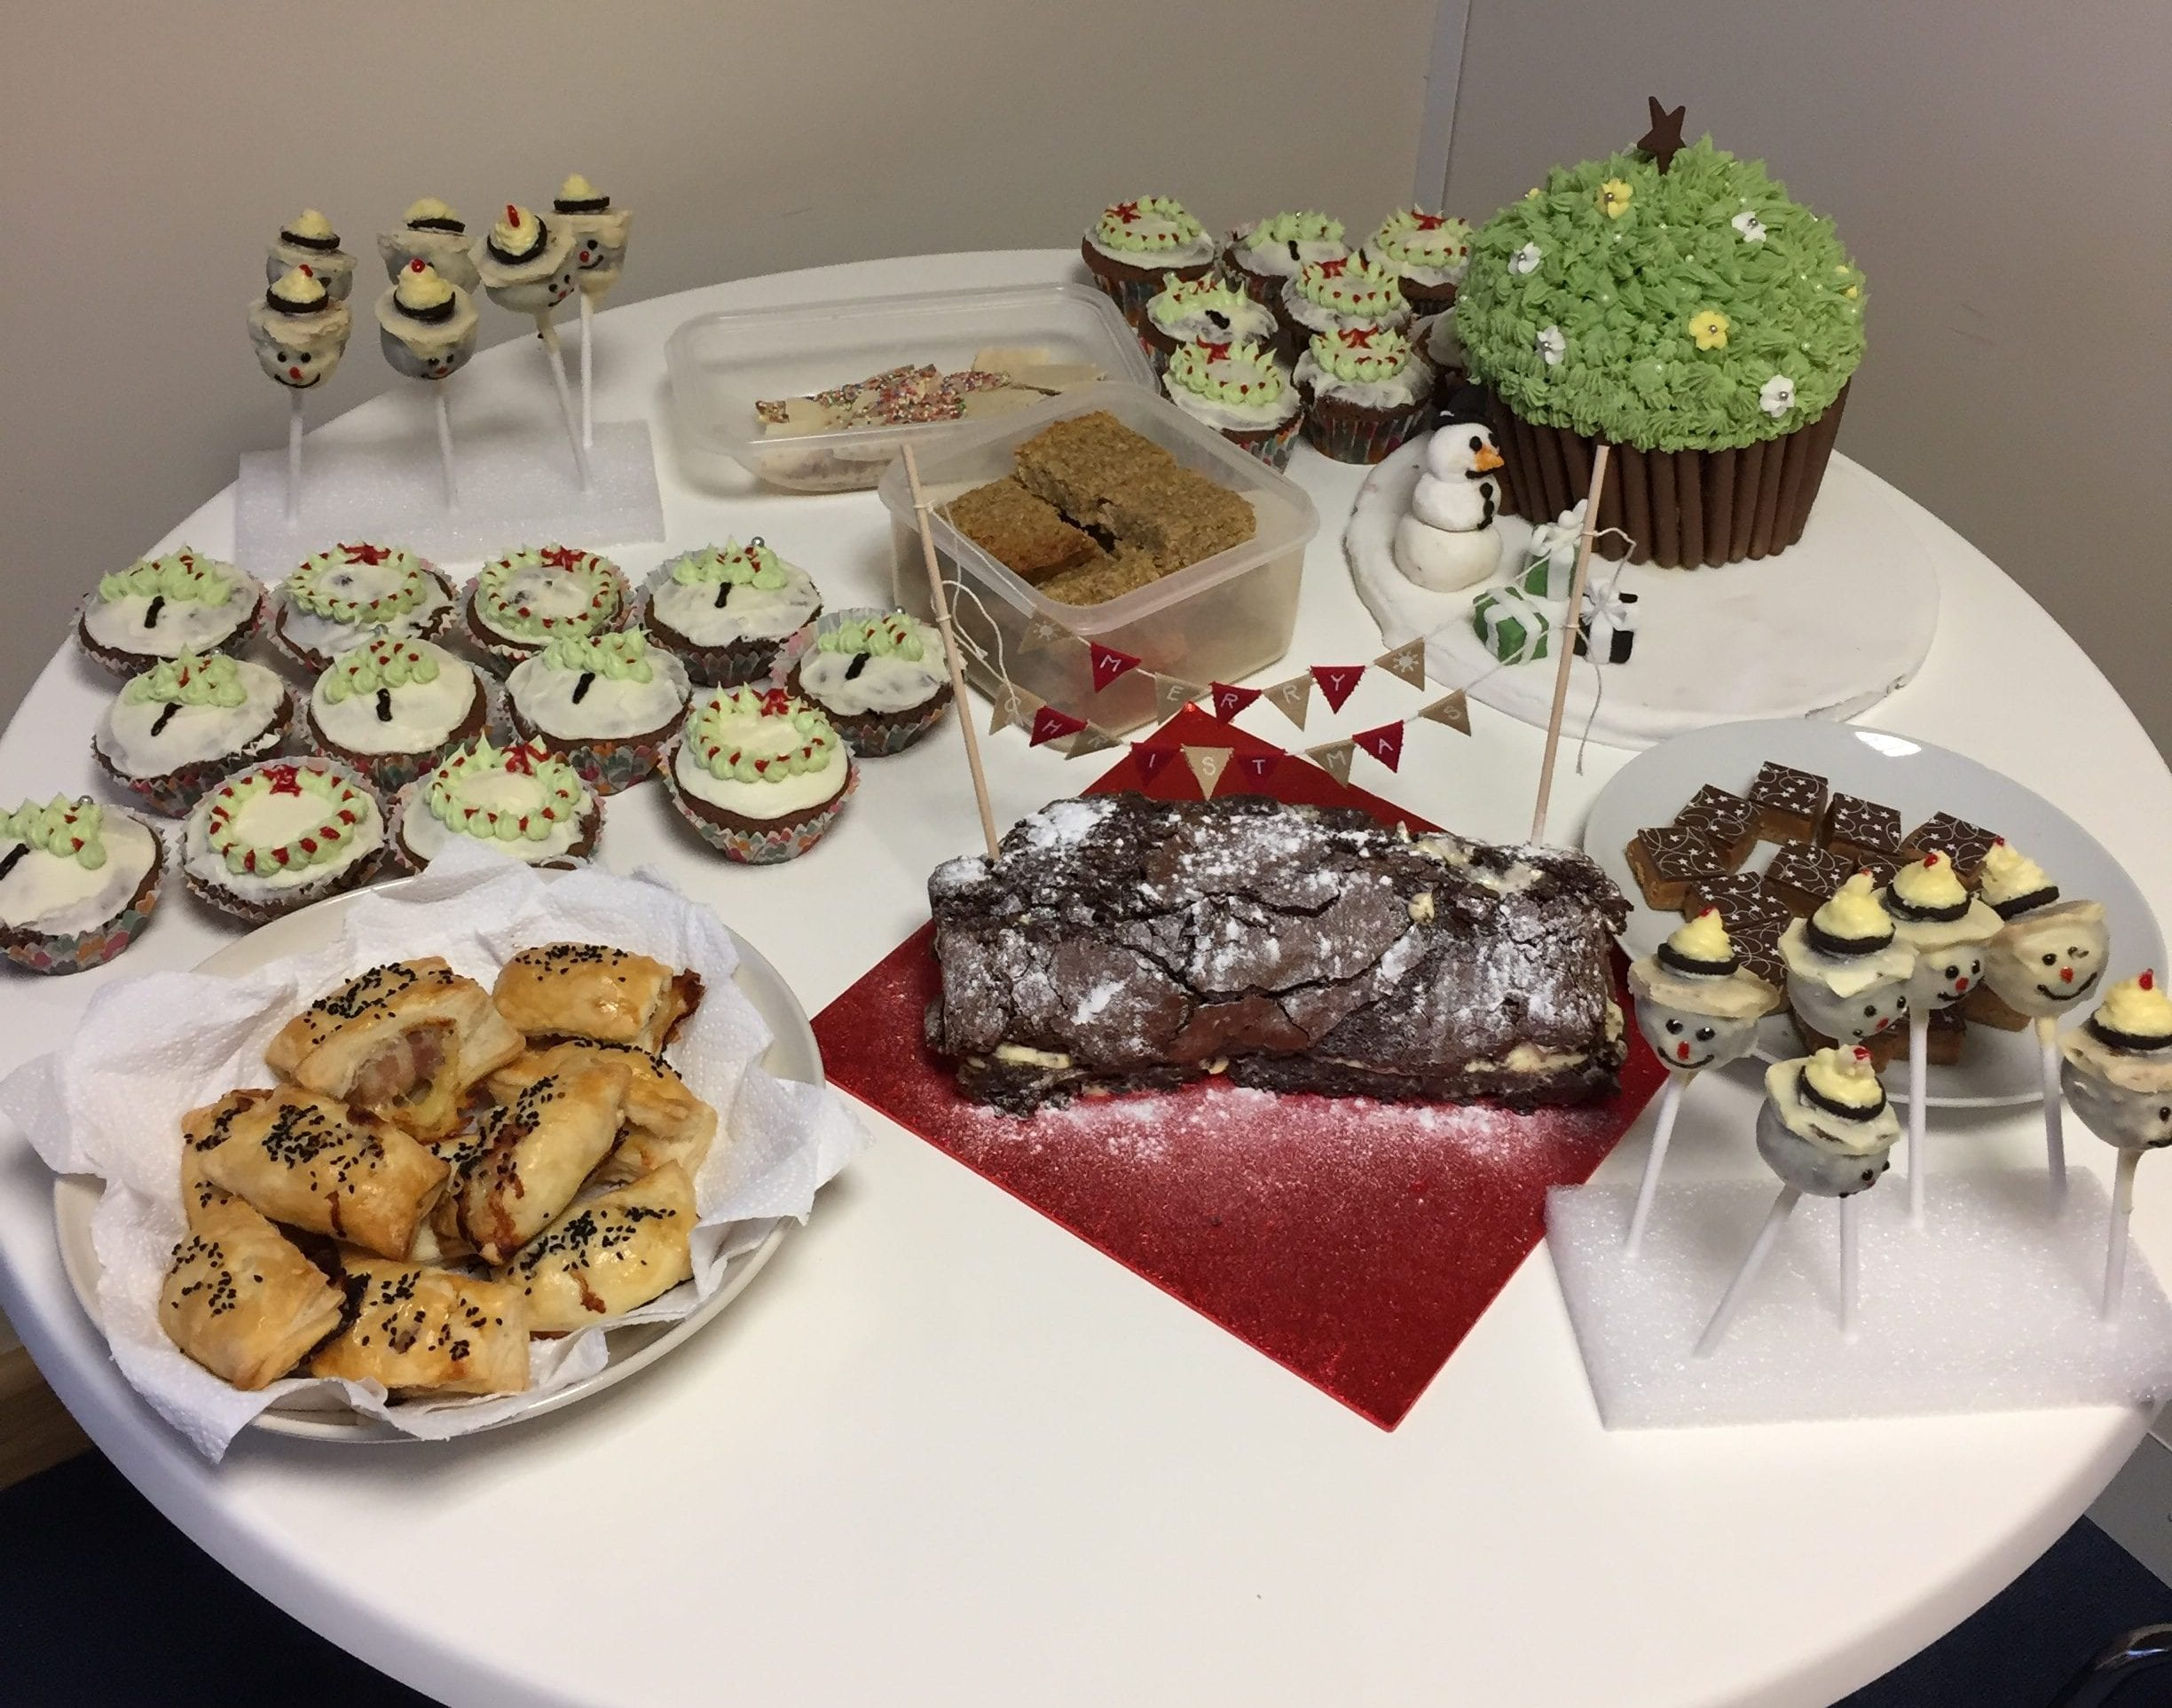 Cakes baked by Prolinx employees in December 2016